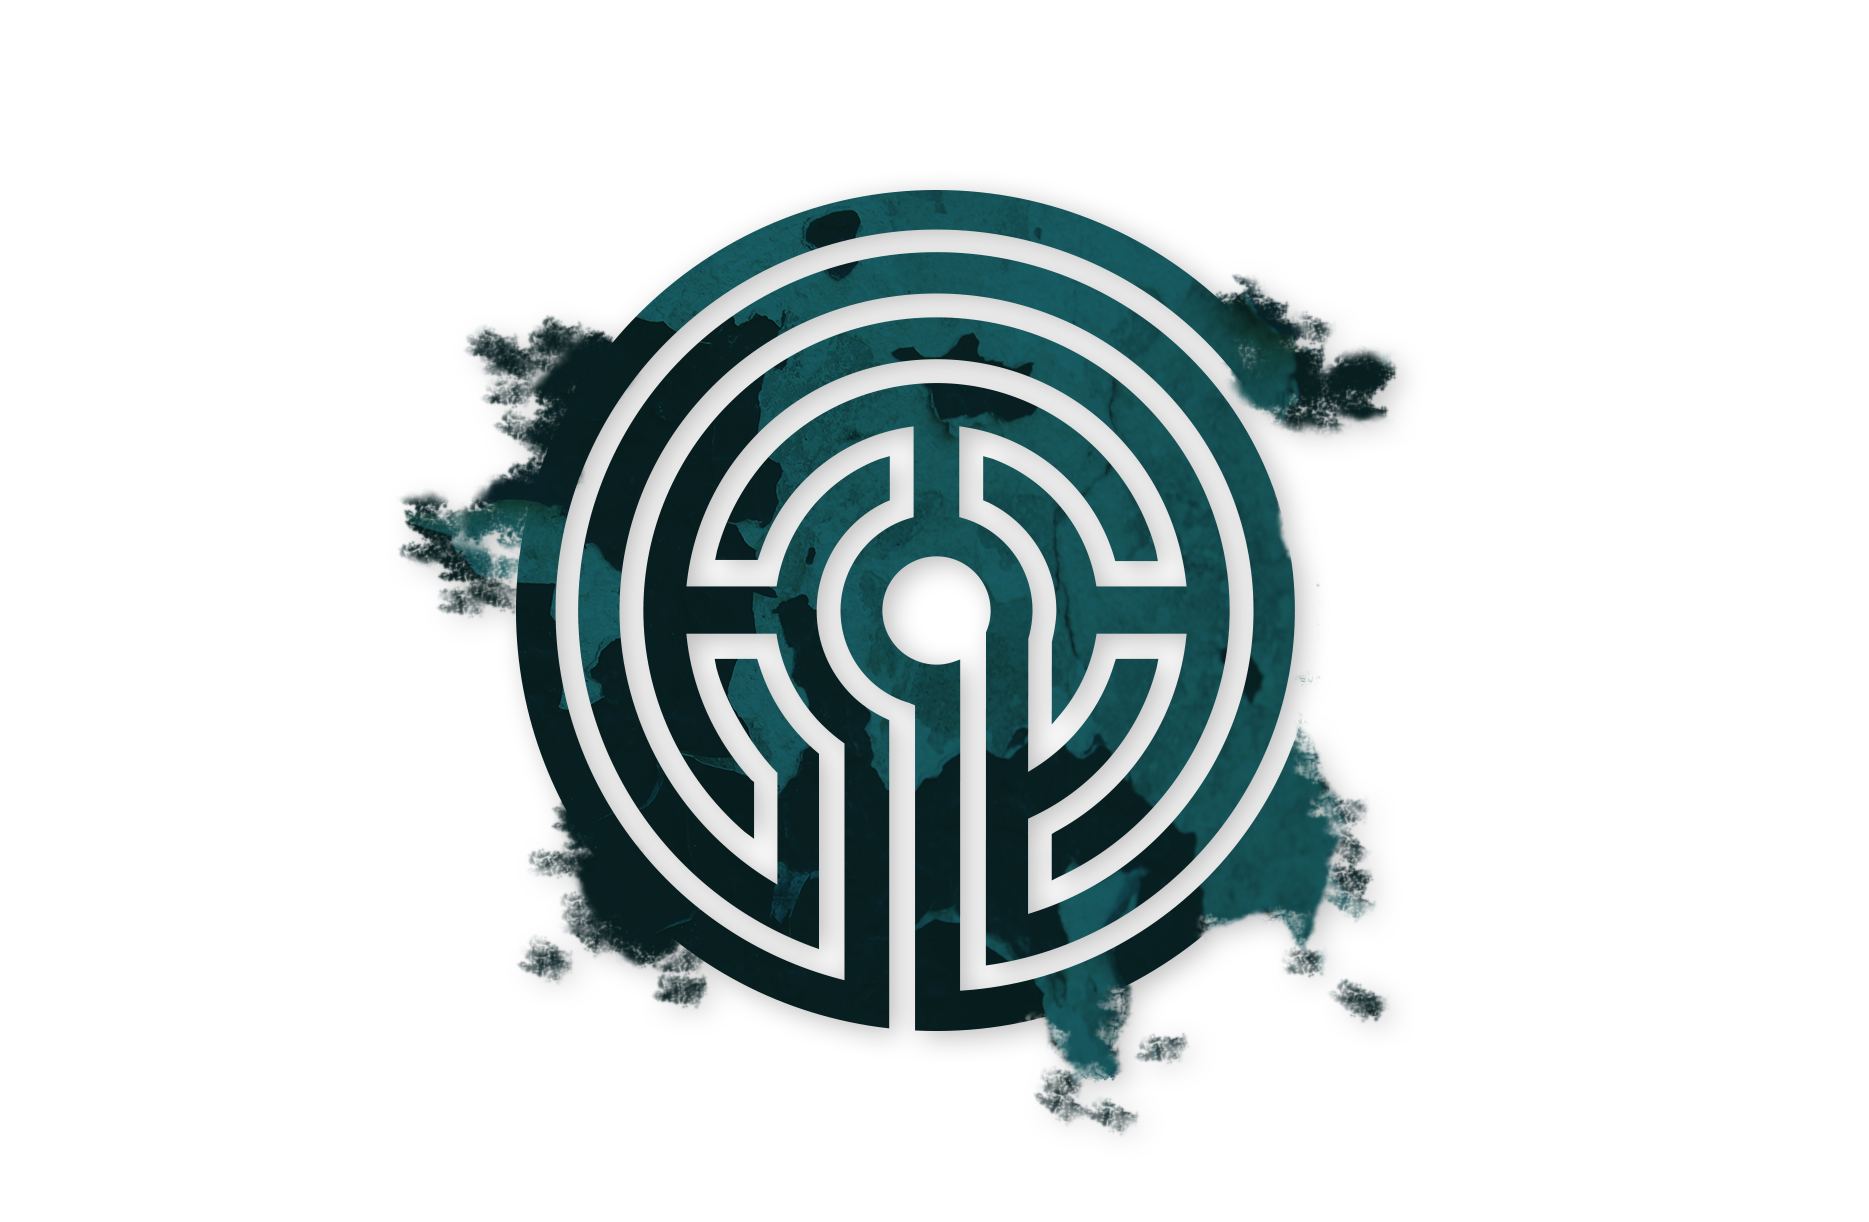 Final Escape Signet Logo